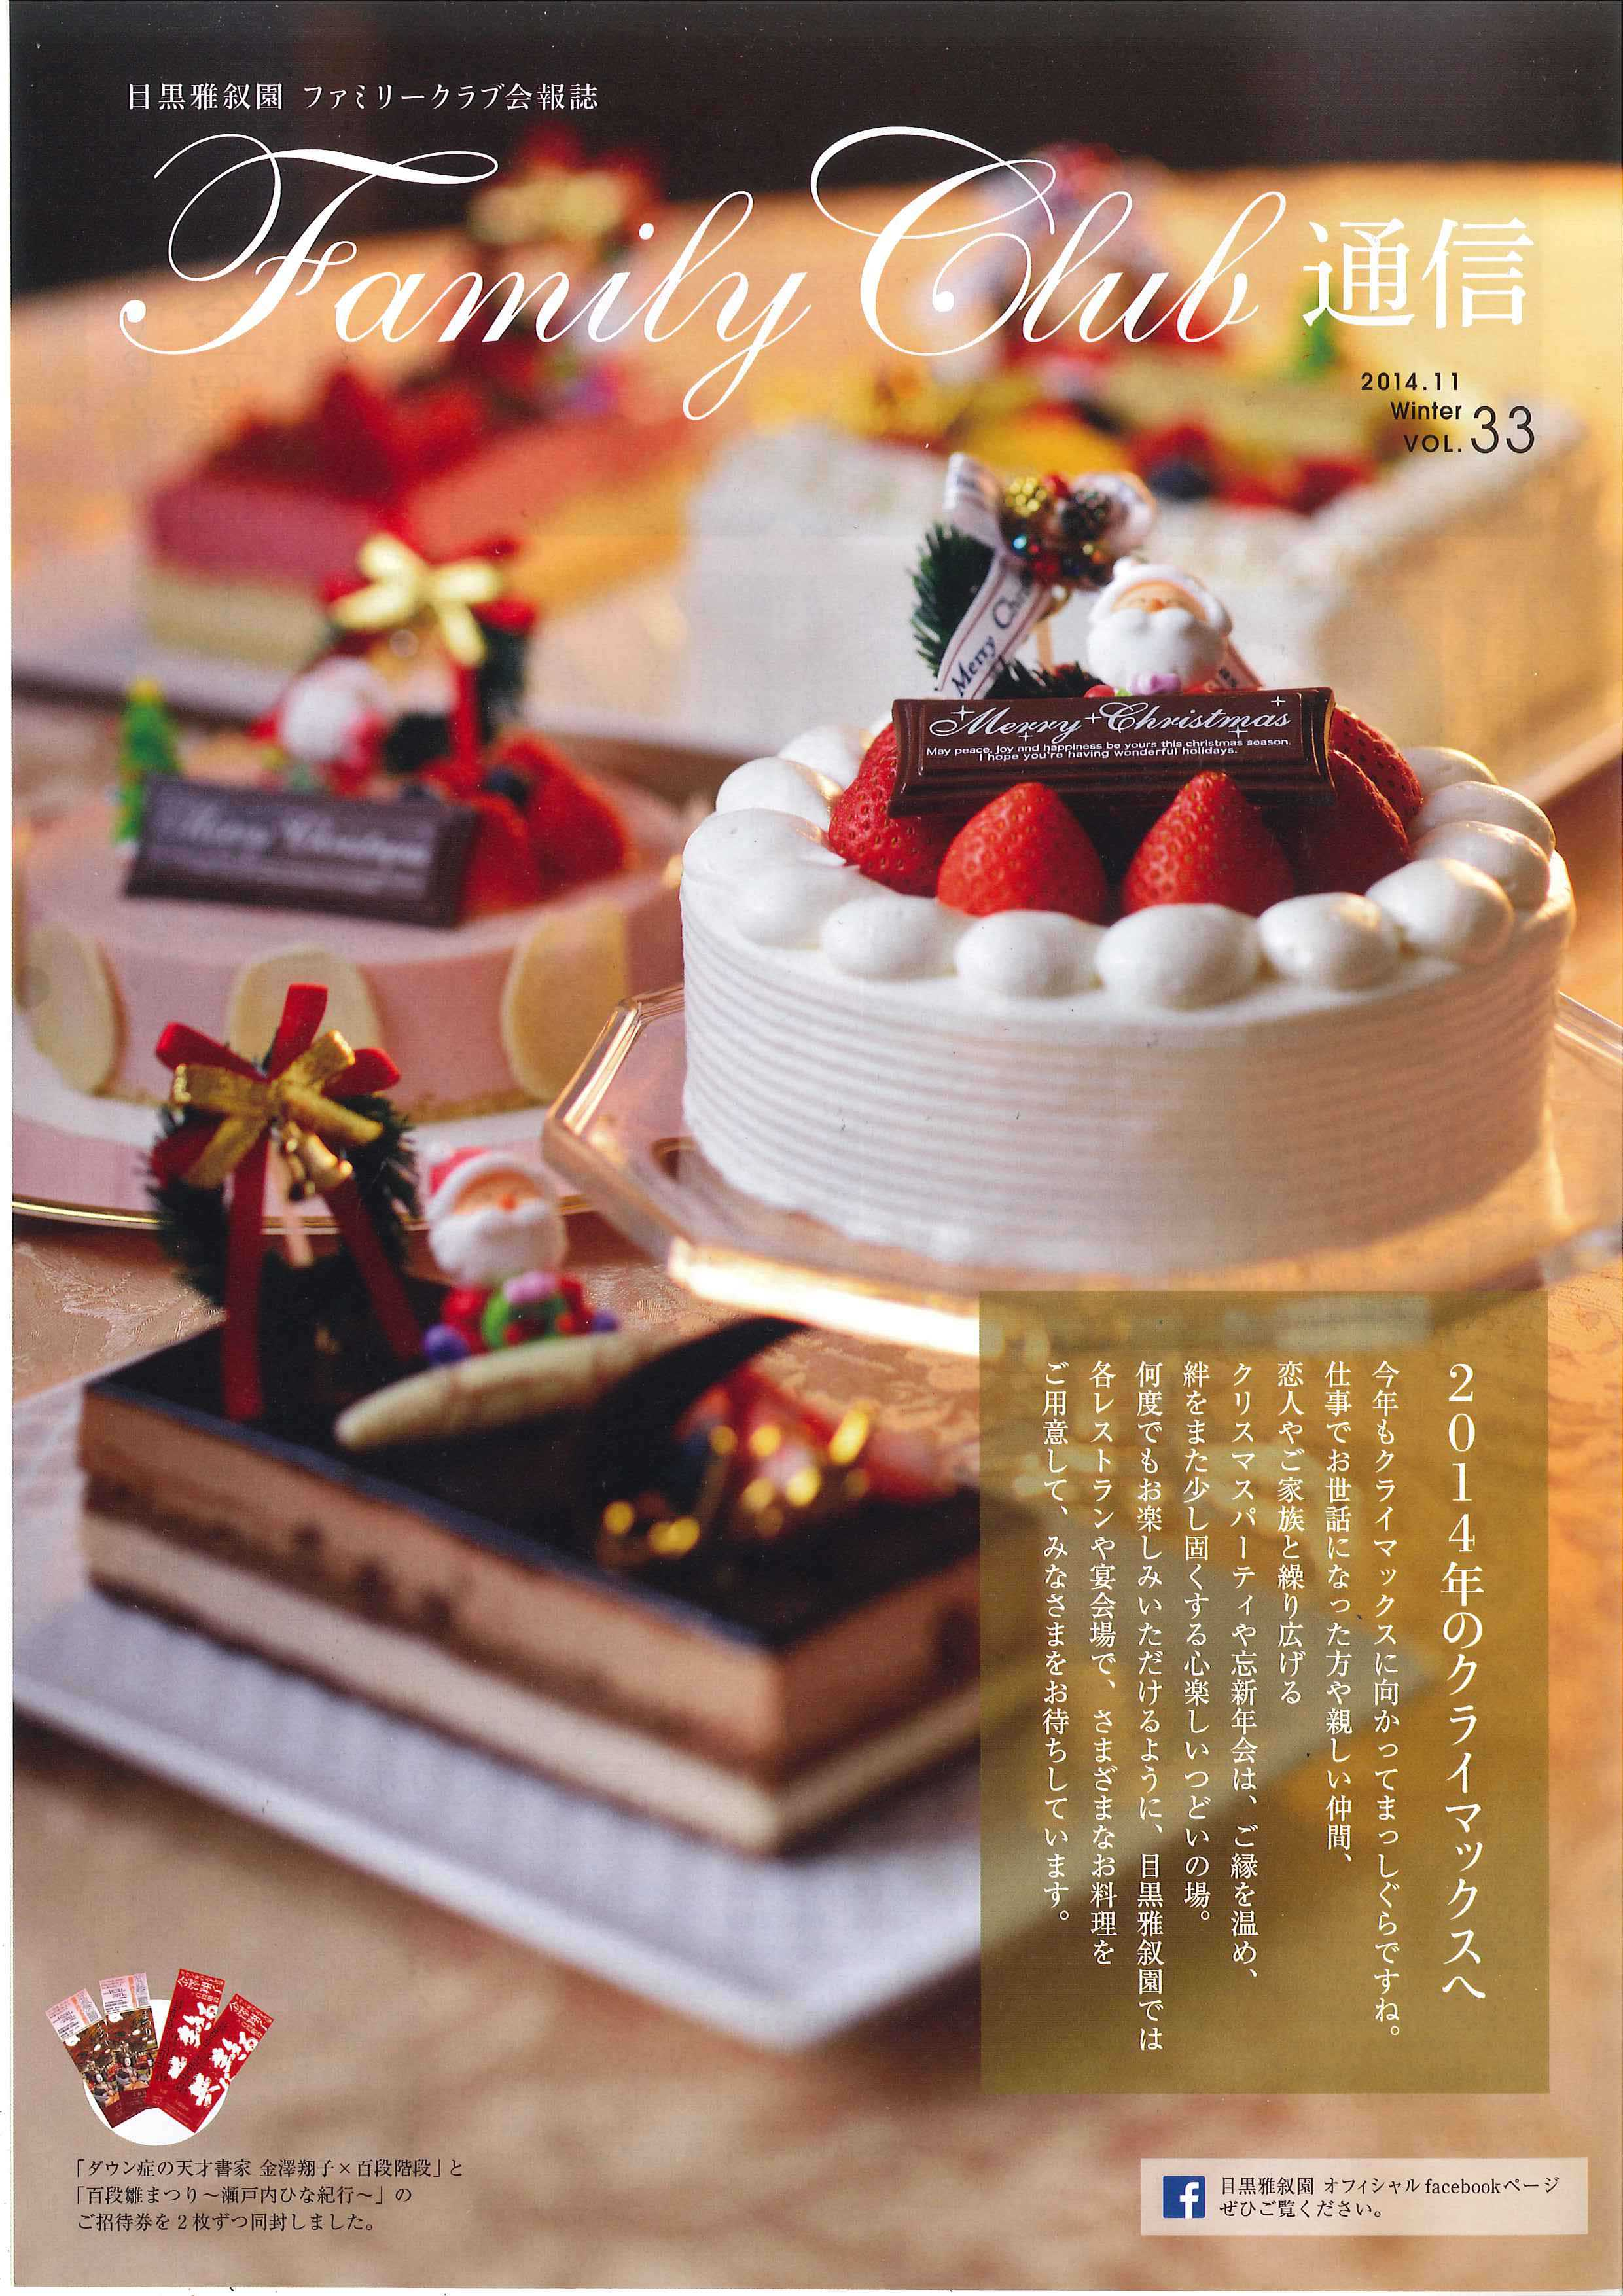 「Family Club 通信」2014.11 Winter VOL.33